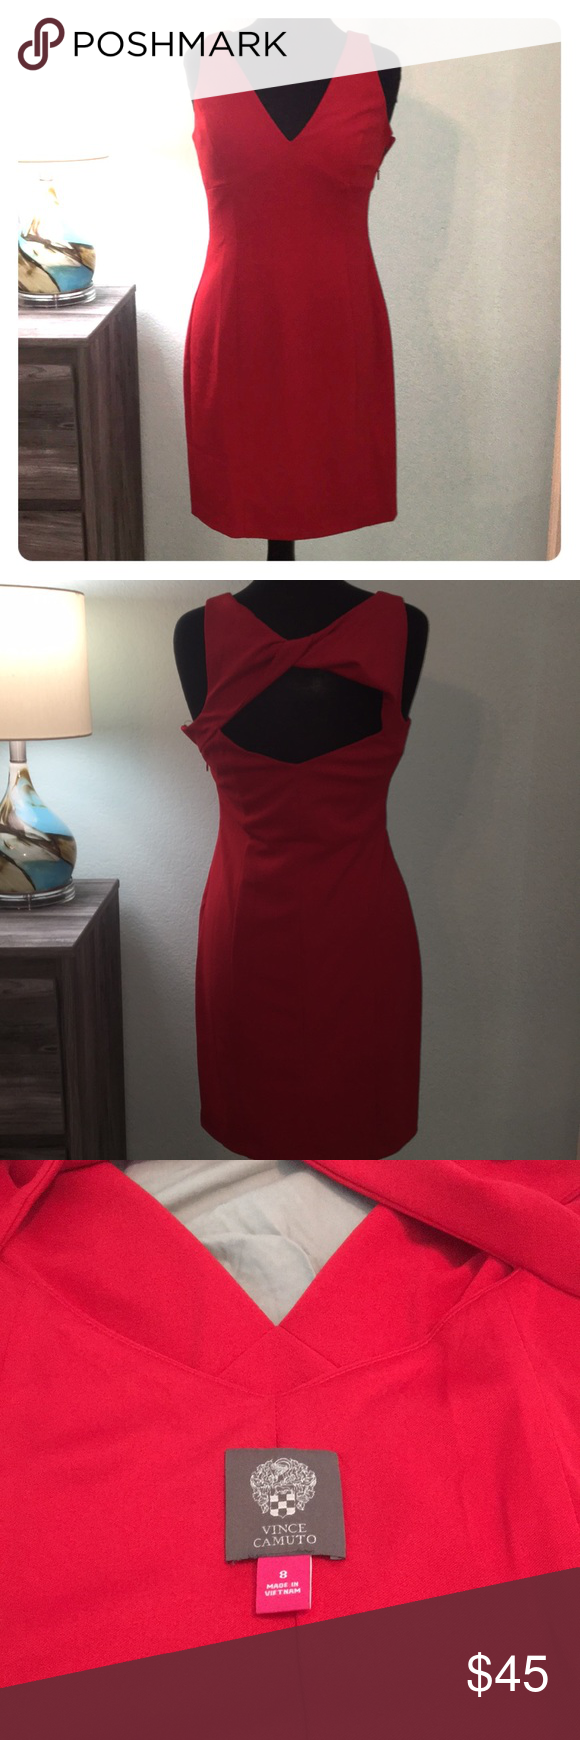 Vince Camuto Red Dress Beautiful Vince Camuto Dress With Open Back Fits Perfect On The Body And Has An Under Slip To Wear With Out A Dresses Red Dress Fashion [ 1740 x 580 Pixel ]